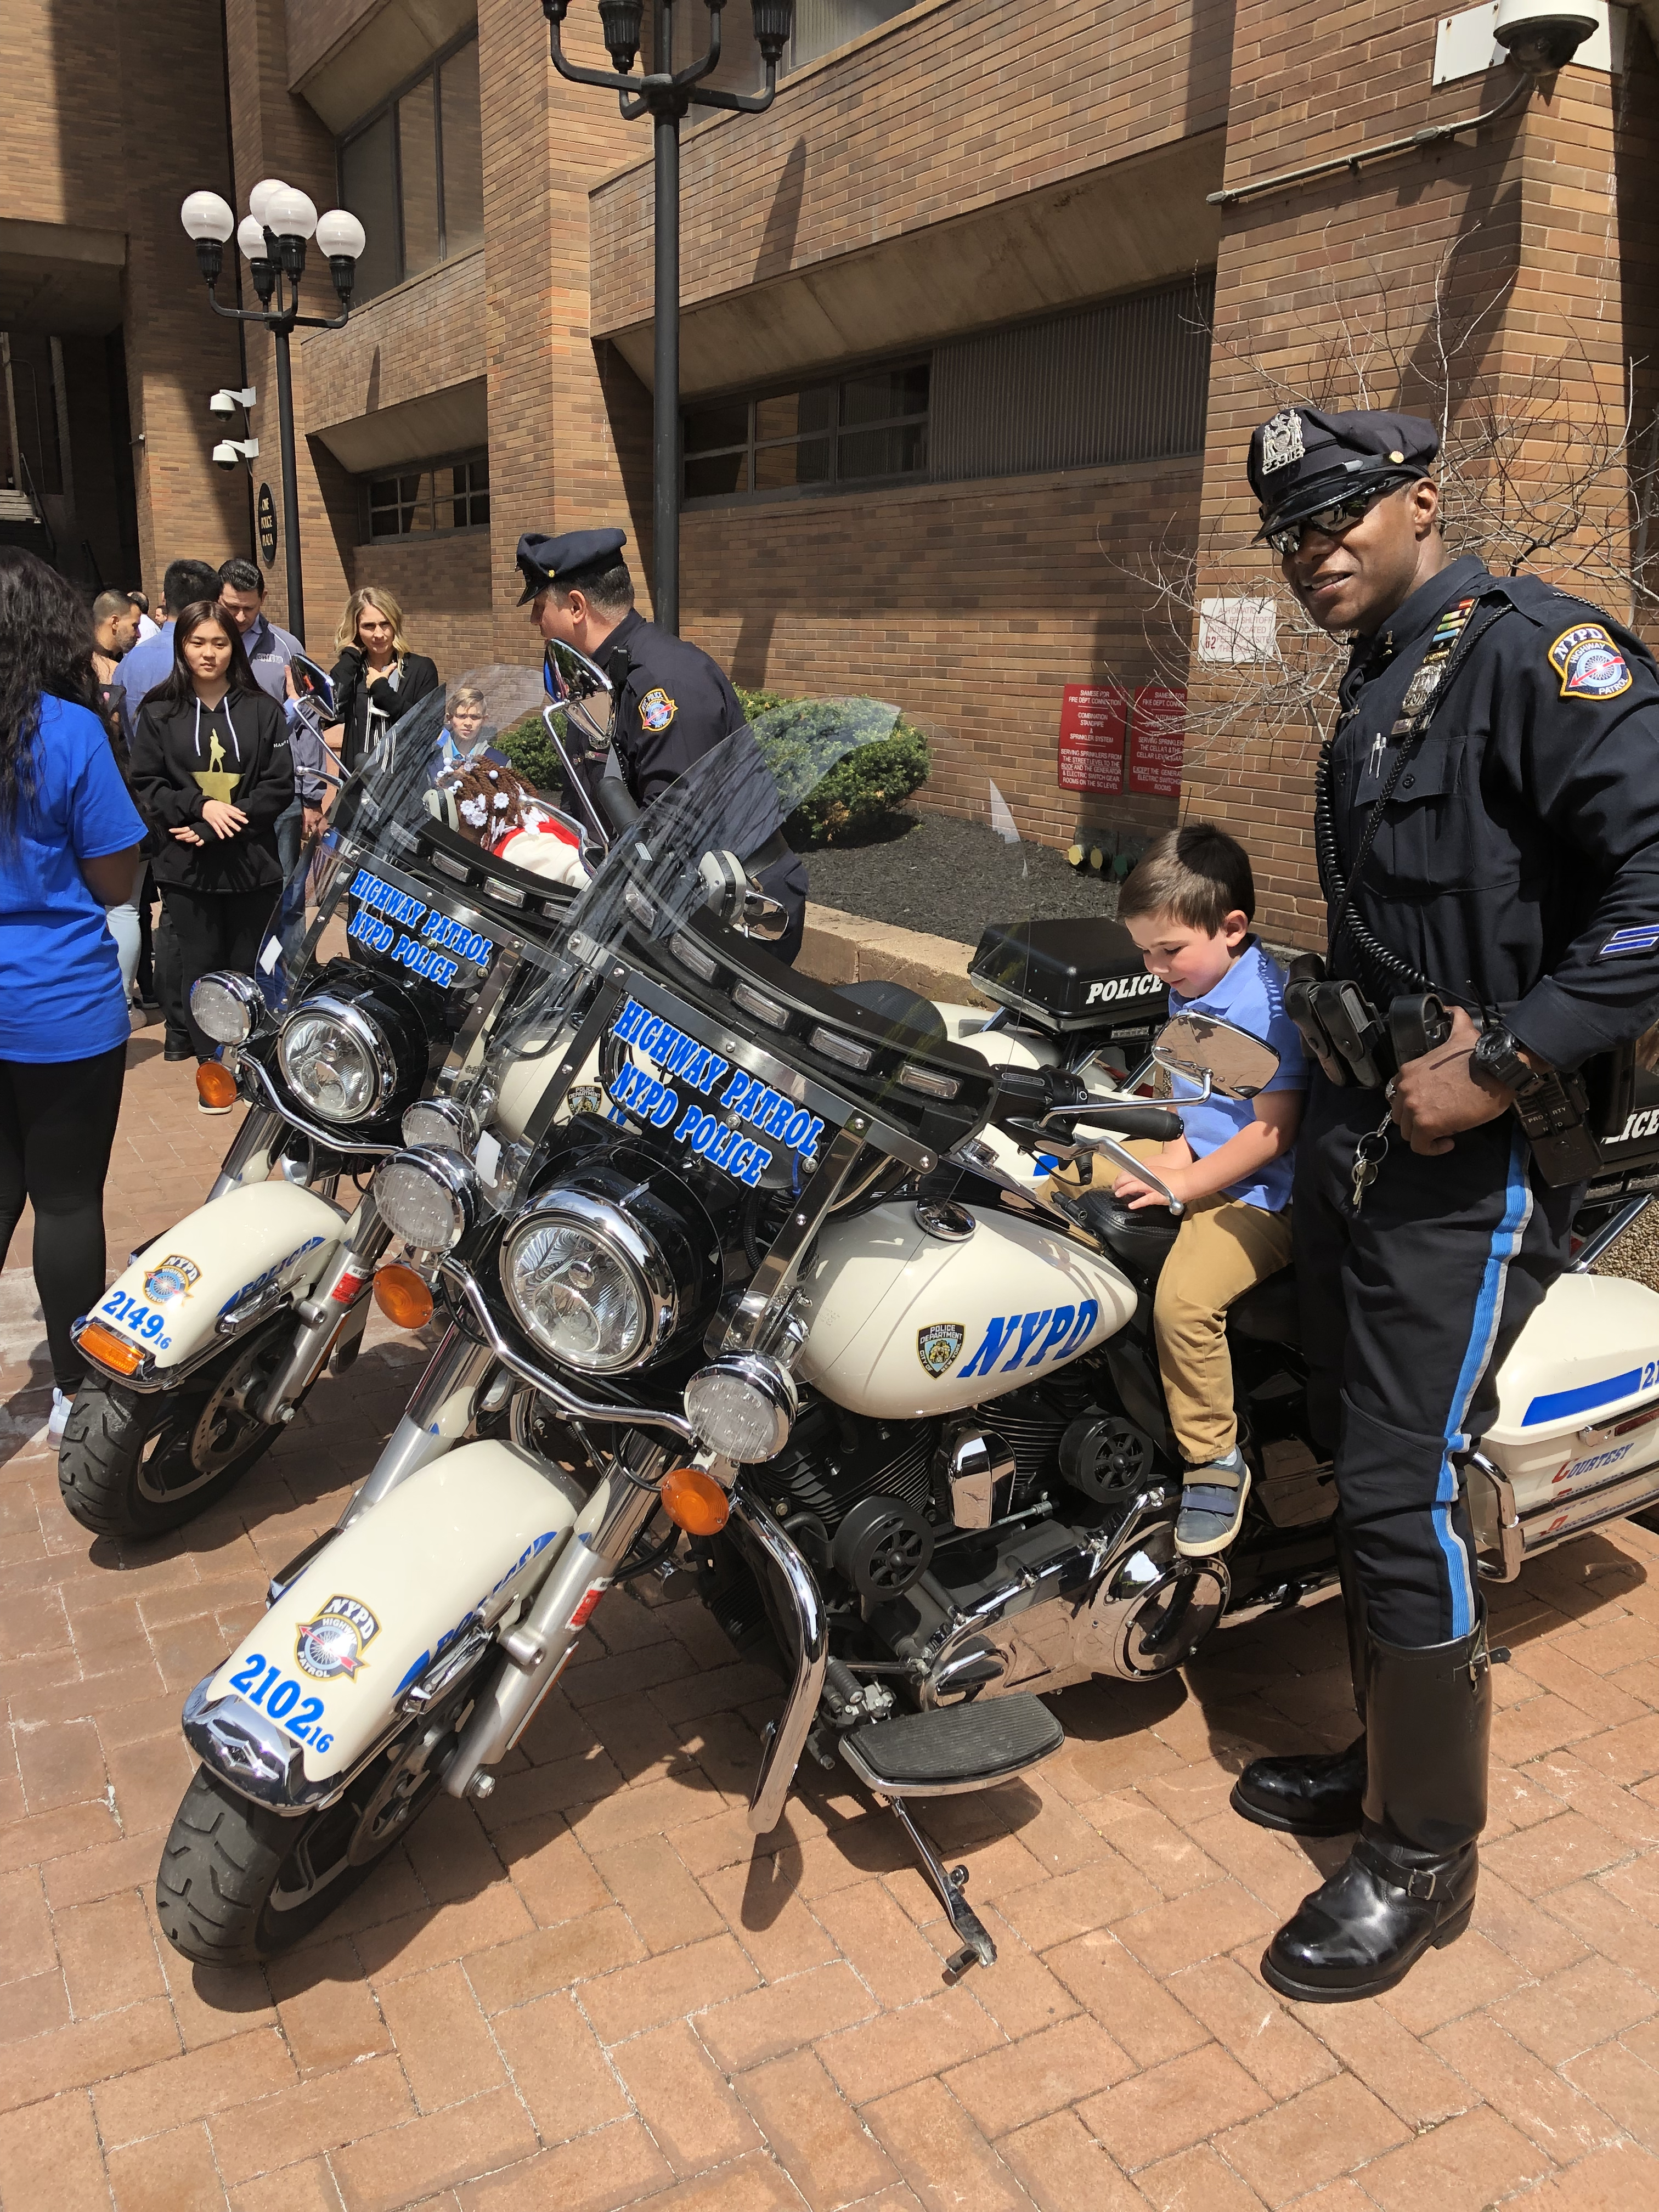 2019 NYPD Bring Your Child to Work Day